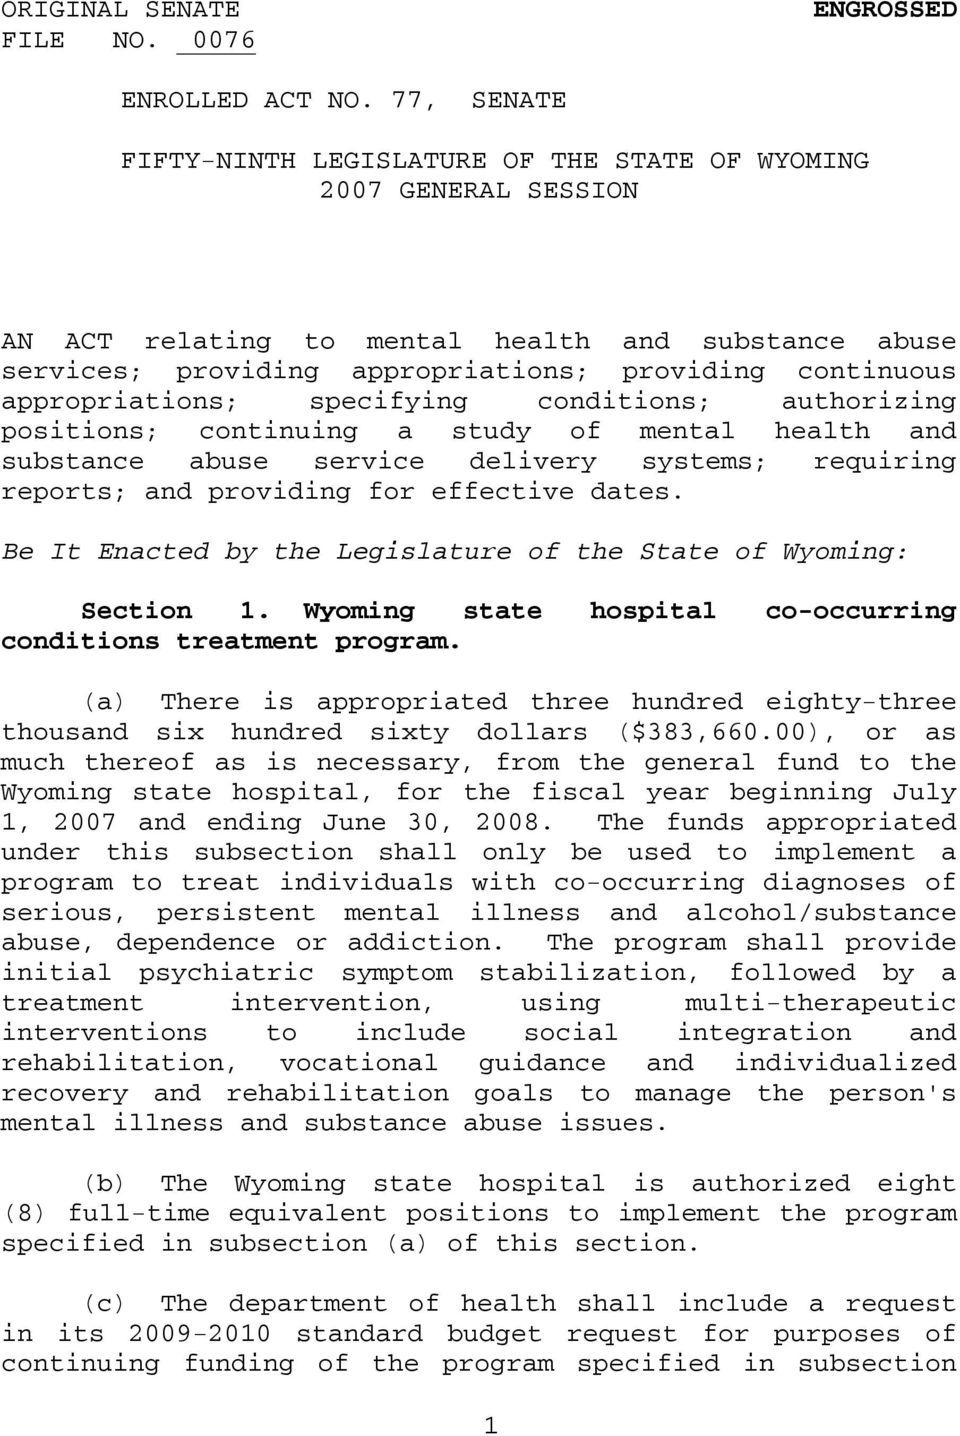 Wyoming state hospital co-occurring conditions treatment program. (a) There is appropriated three hundred eighty-three thousand six hundred sixty dollars ($383,660.